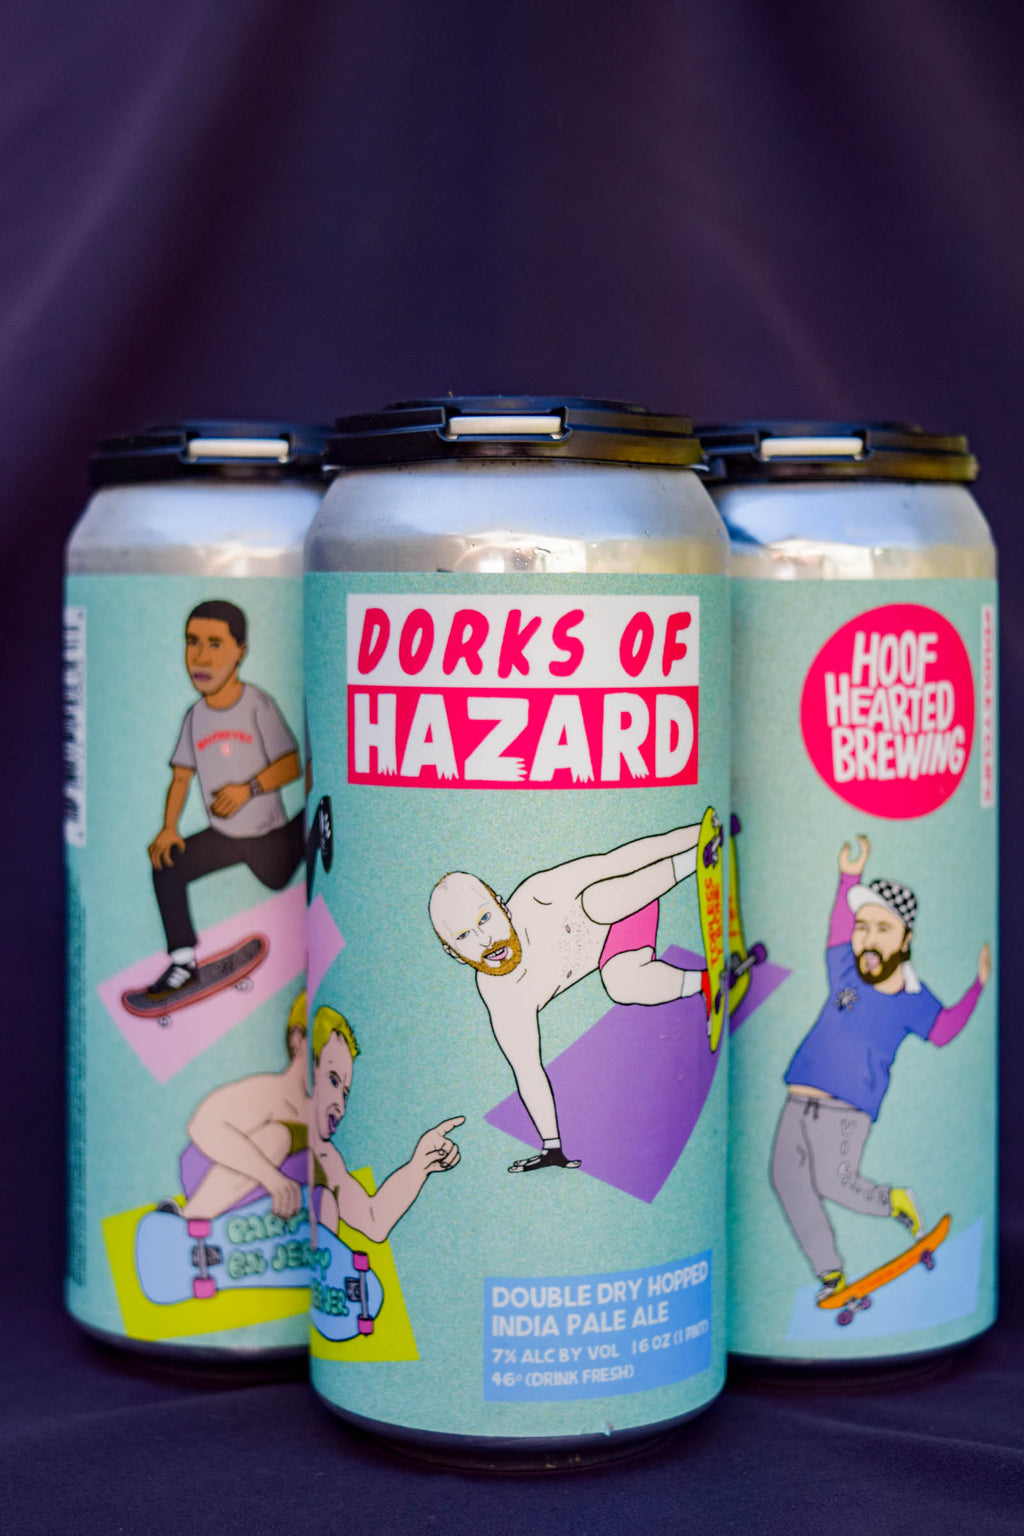 Buy Hoof Hearted Dorks of Hazard Double Dry Hopped IPA Online